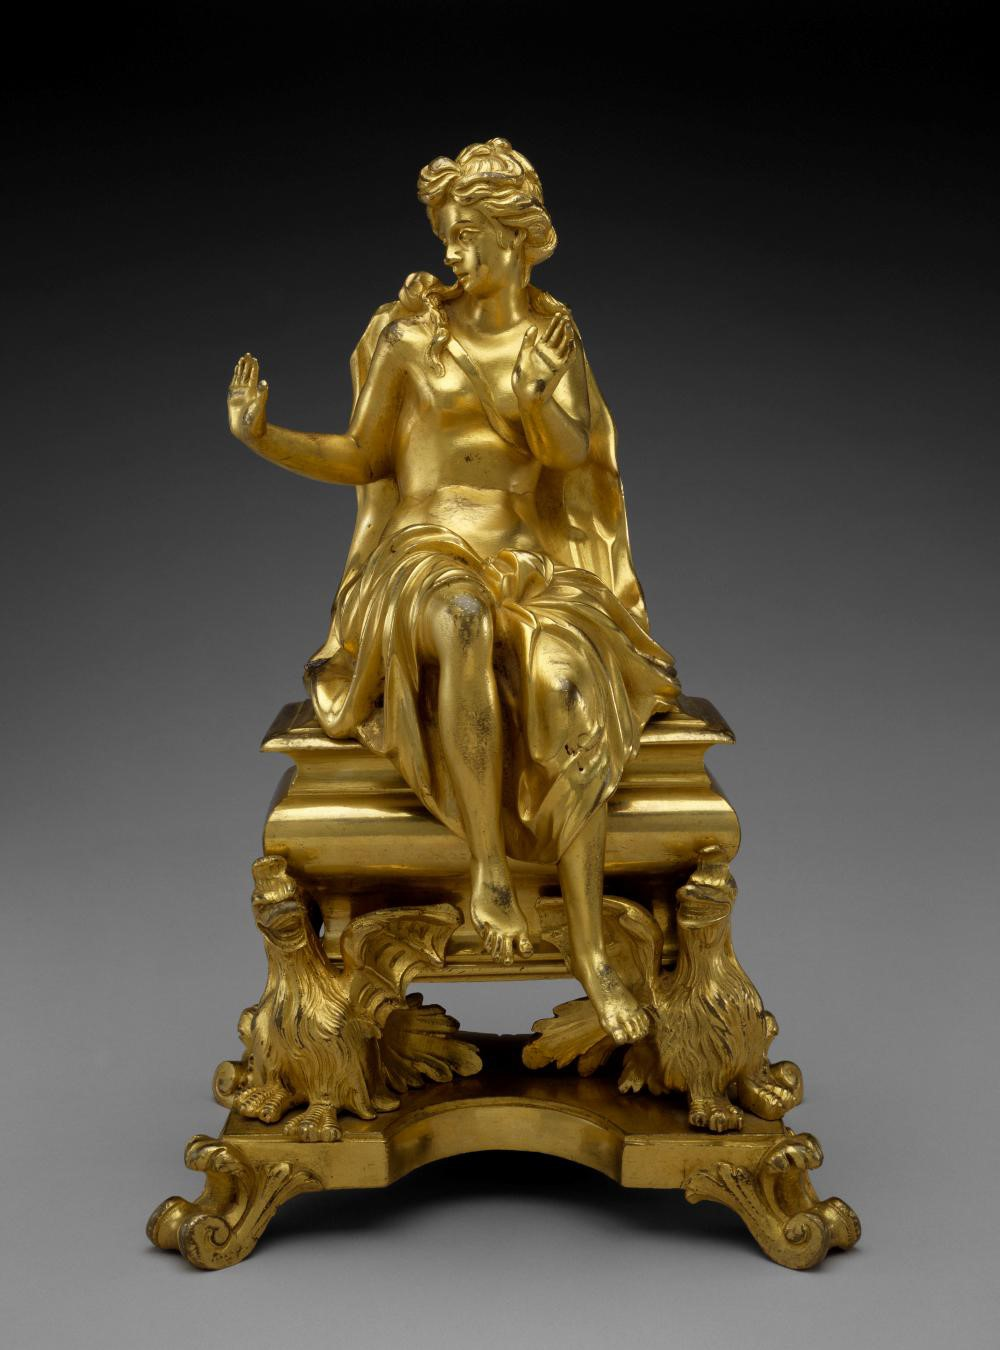 French, Chenet (one of a pair), c. 1710–40